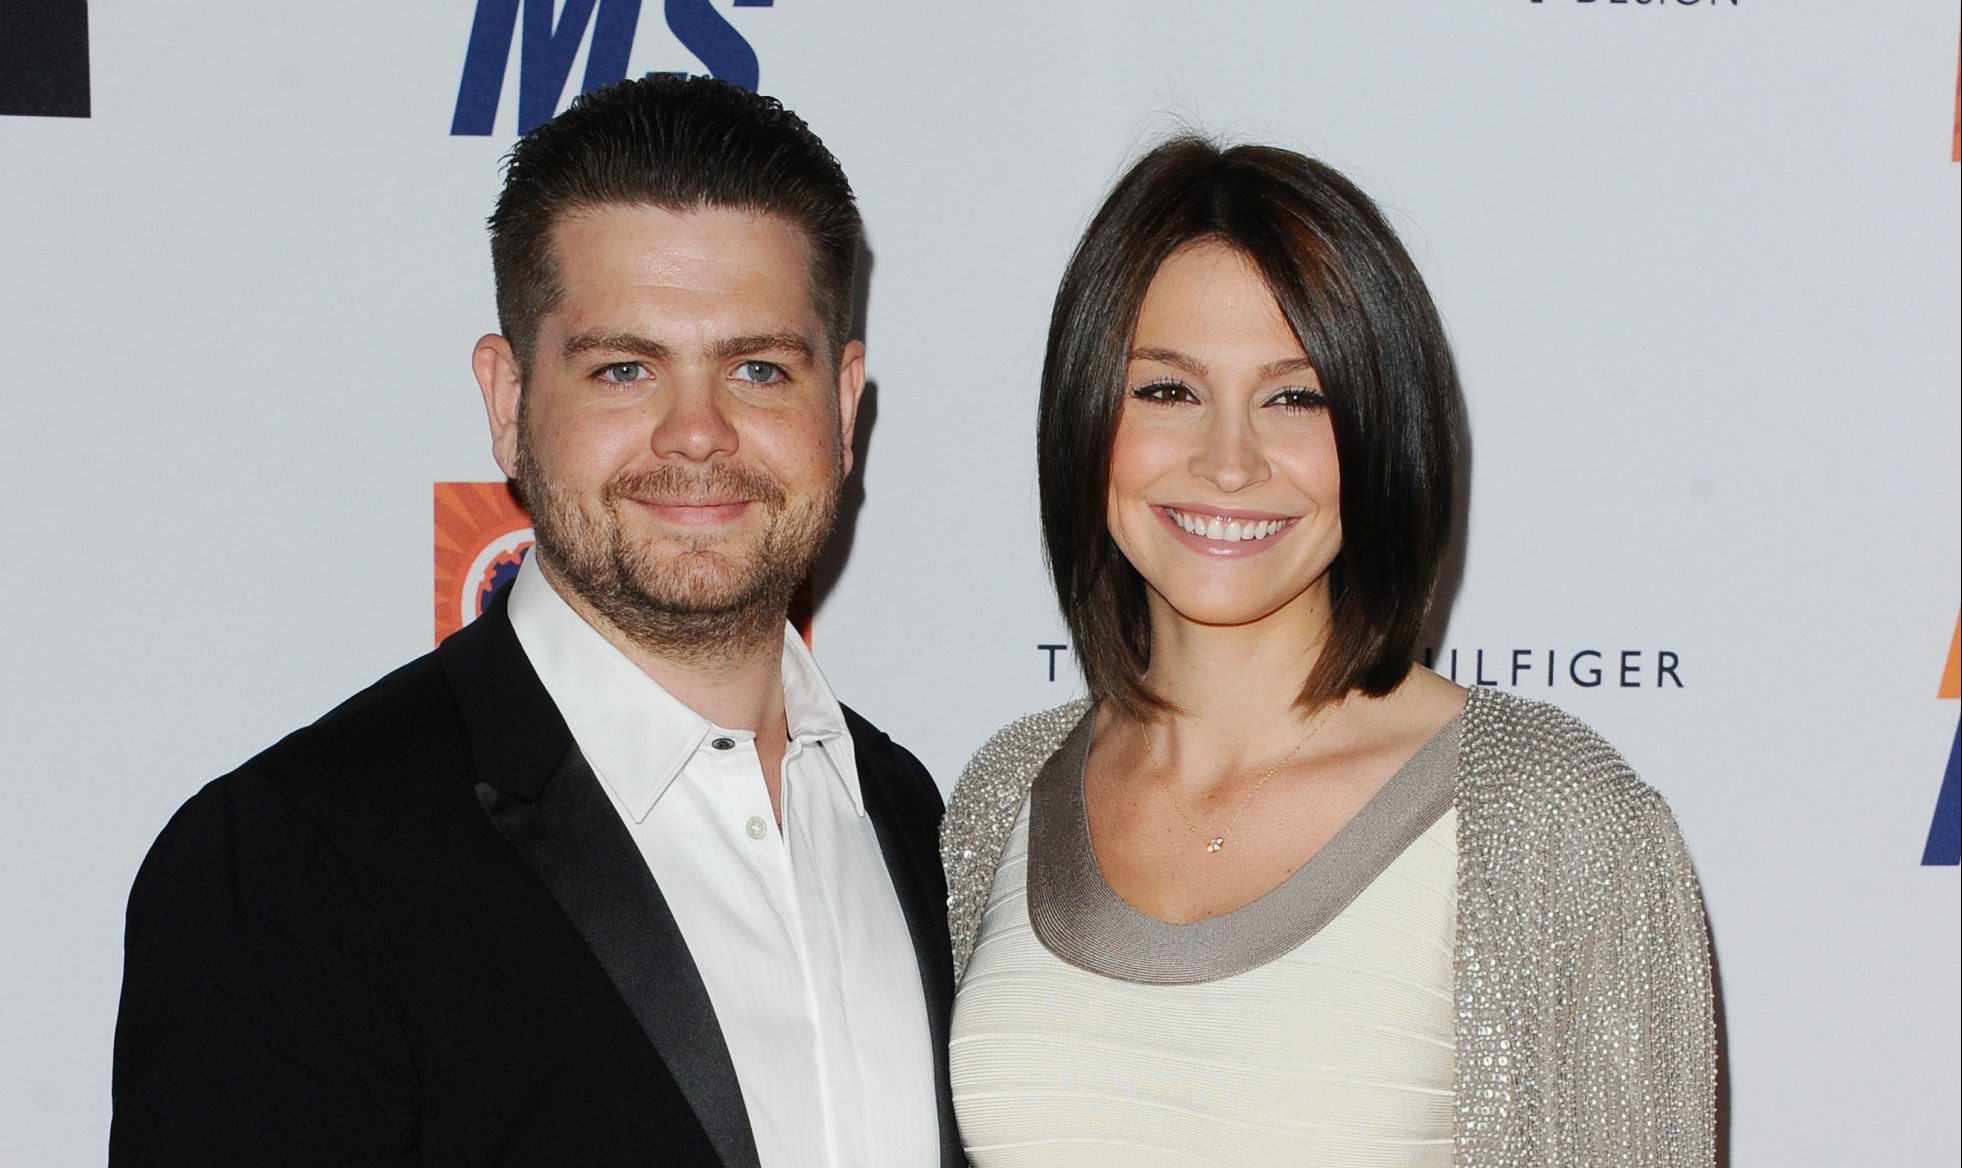 Jack Osbourne and estranged wife come together to celebrate daughter Andy's third birthday